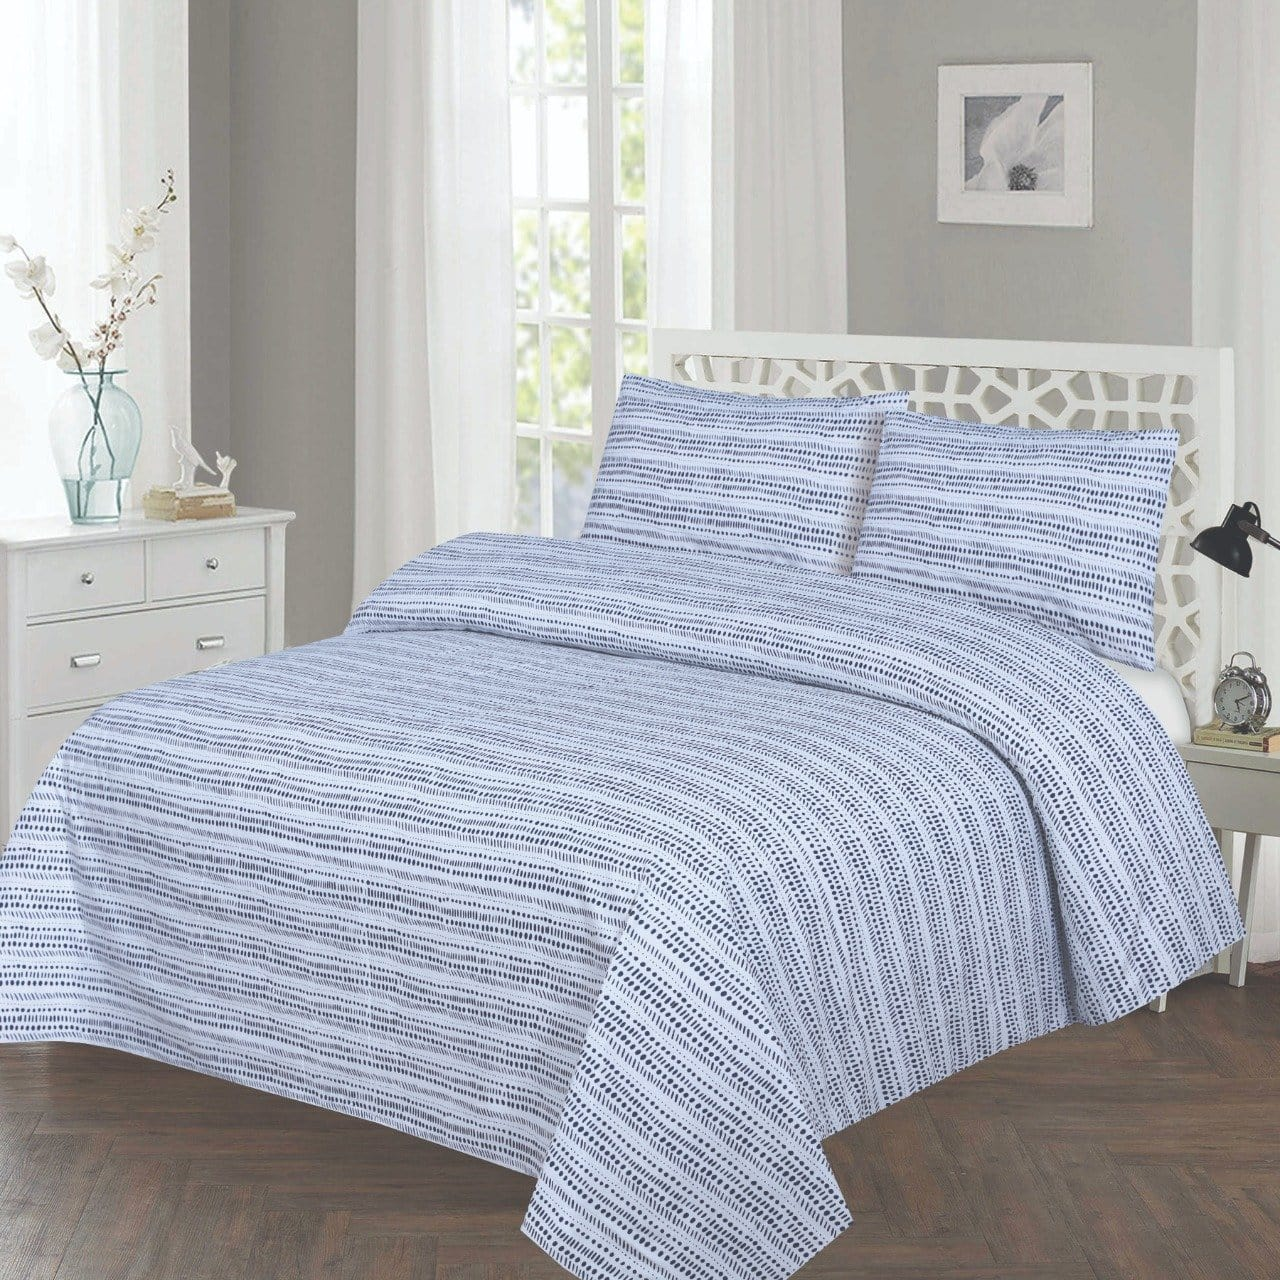 Grace D241-Cotton PC King Size Bedsheet with 2 Pillow Covers.